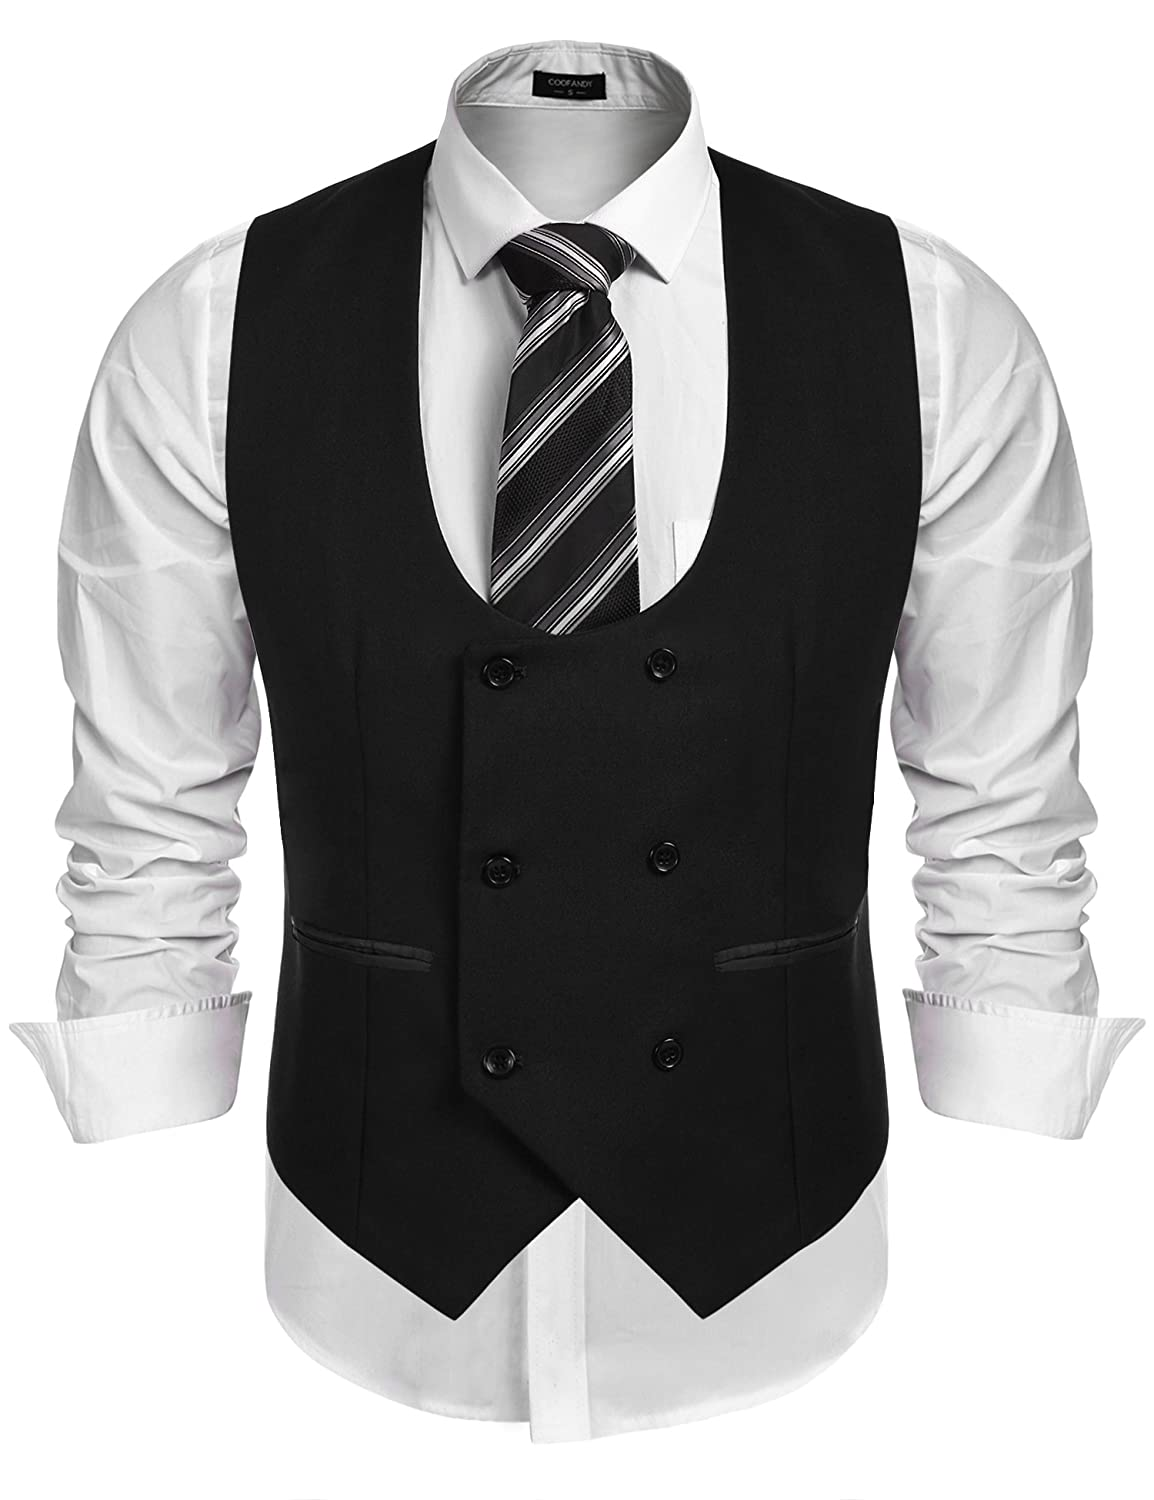 New Vintage Tuxedos, Tailcoats, Morning Suits, Dinner Jackets COOFANDY Mens Slim Fit Sleeveless Suit Vest Double Breasted Business Dress Waistcoat $29.99 AT vintagedancer.com